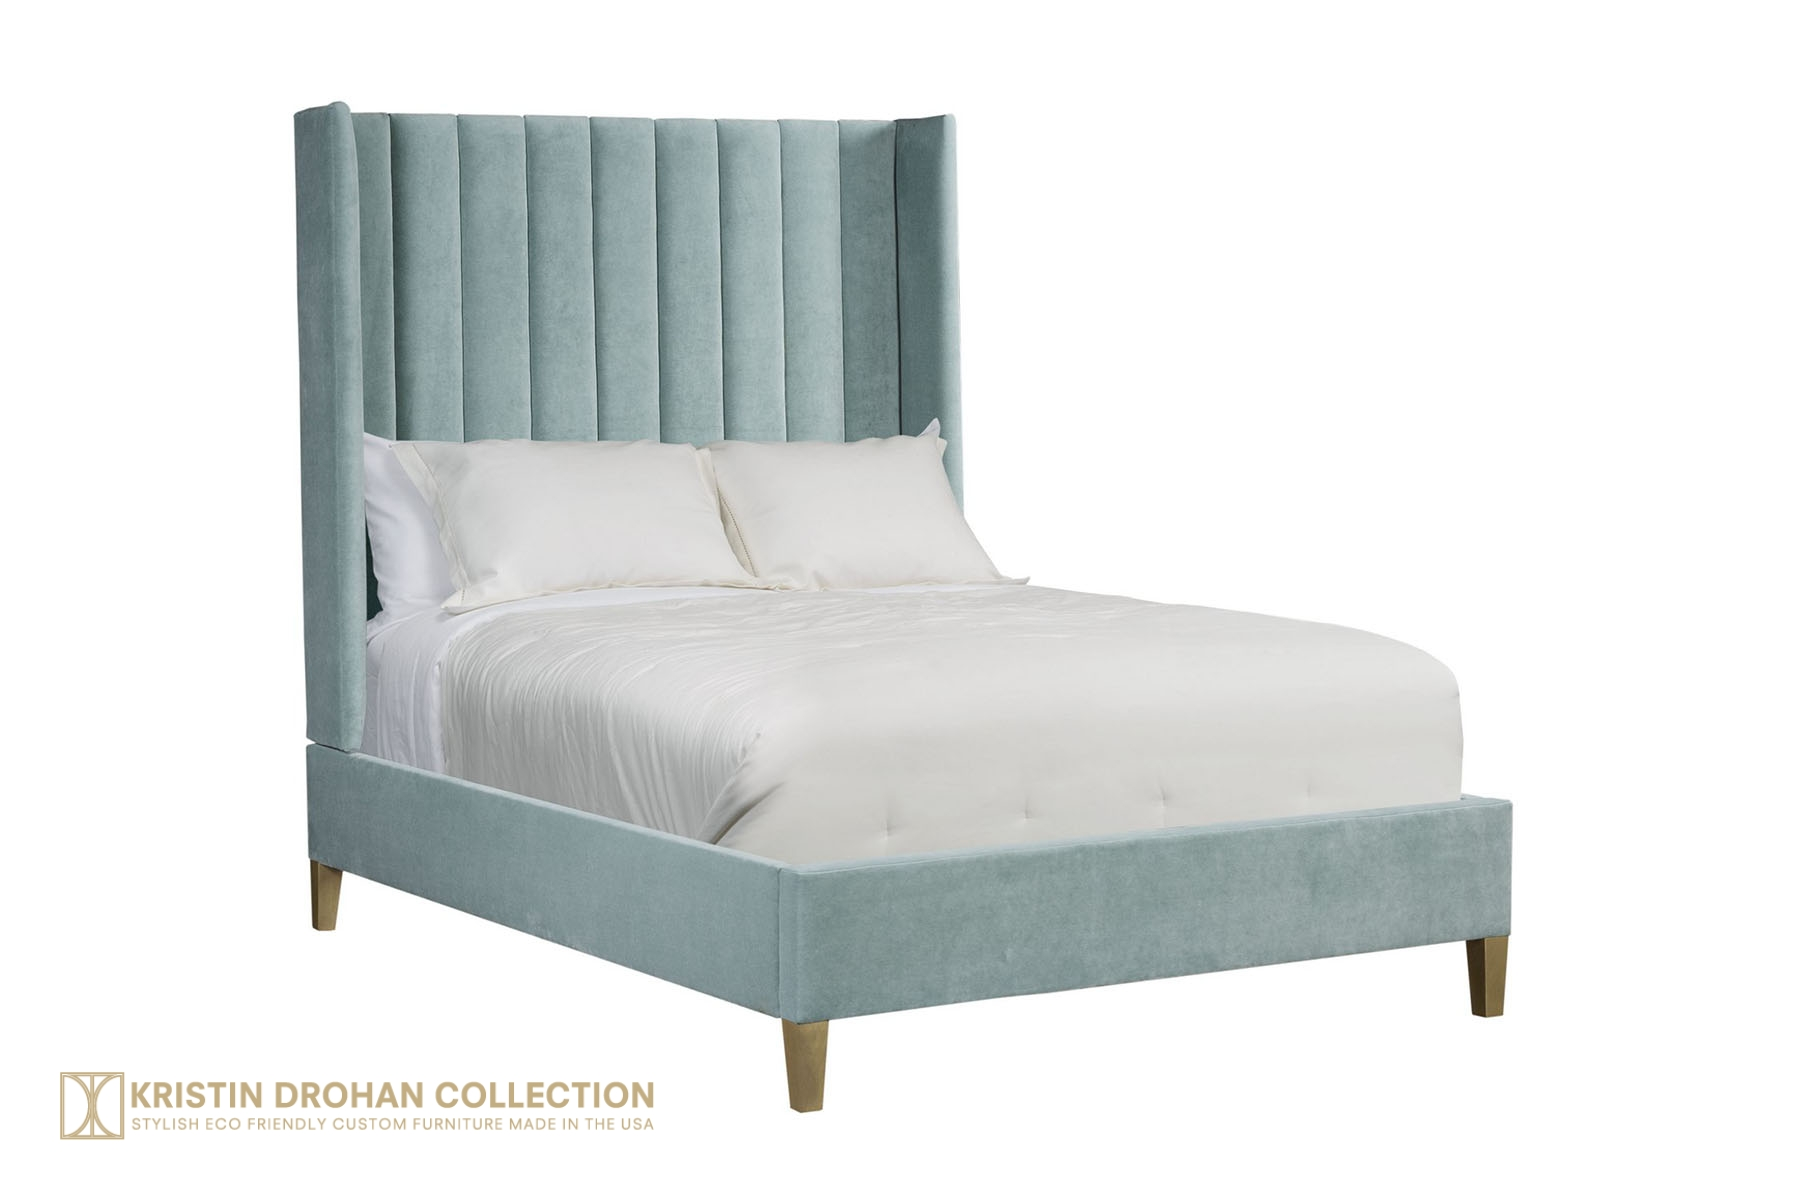 Bronie channel tufted bed